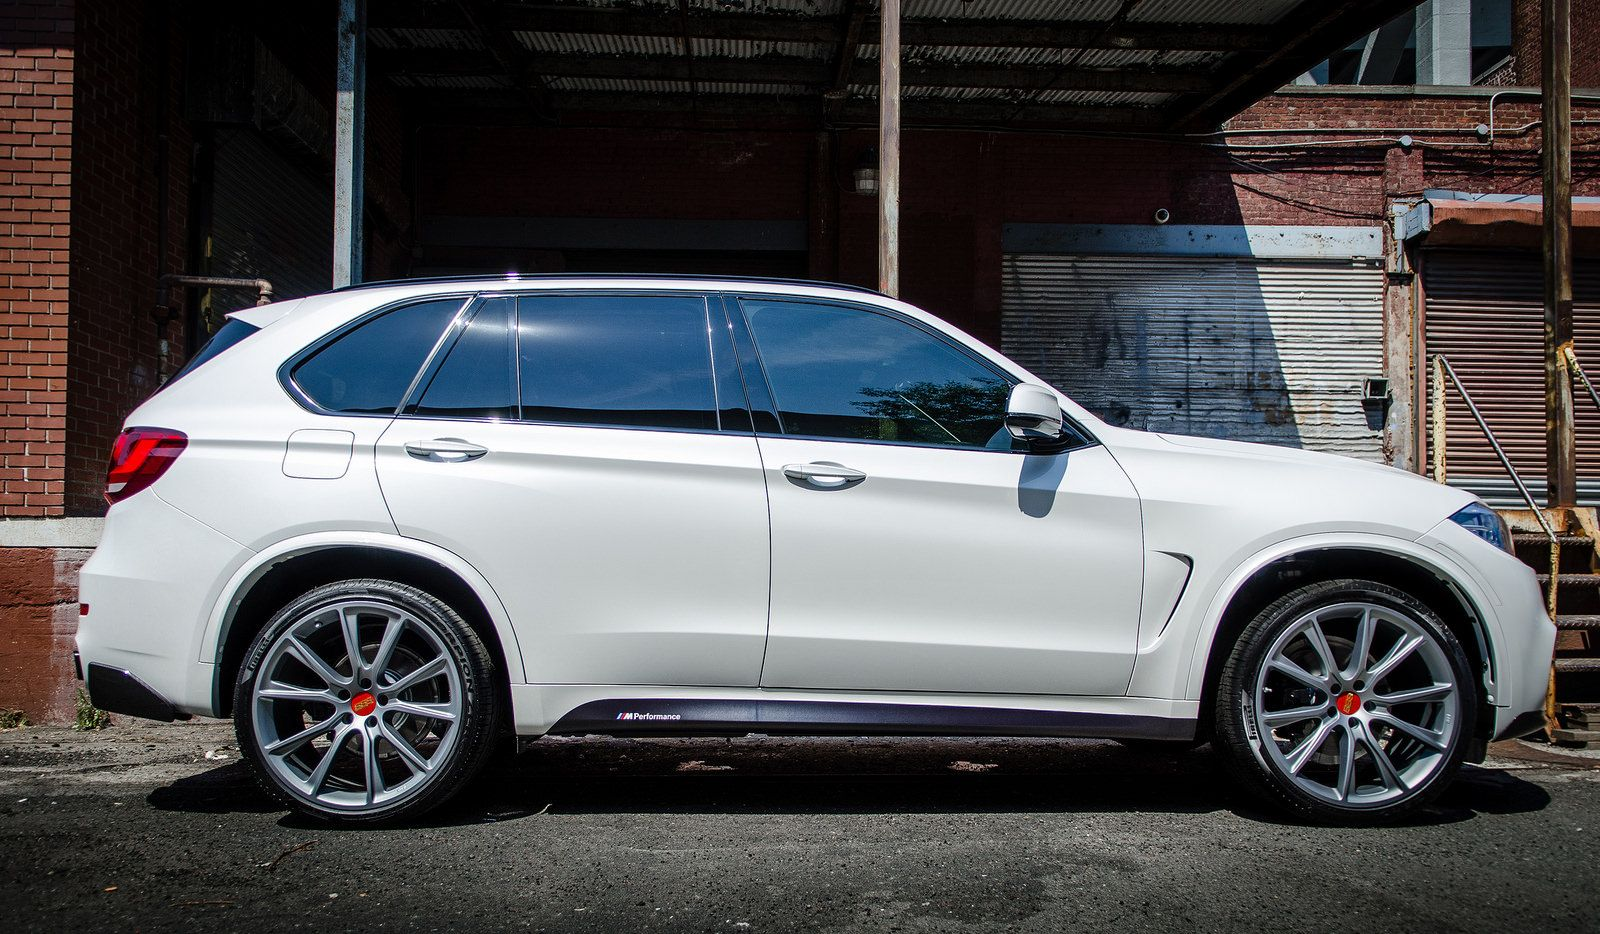 Alan S Photoshoot Mineral White F15 With Images Bmw X5 M